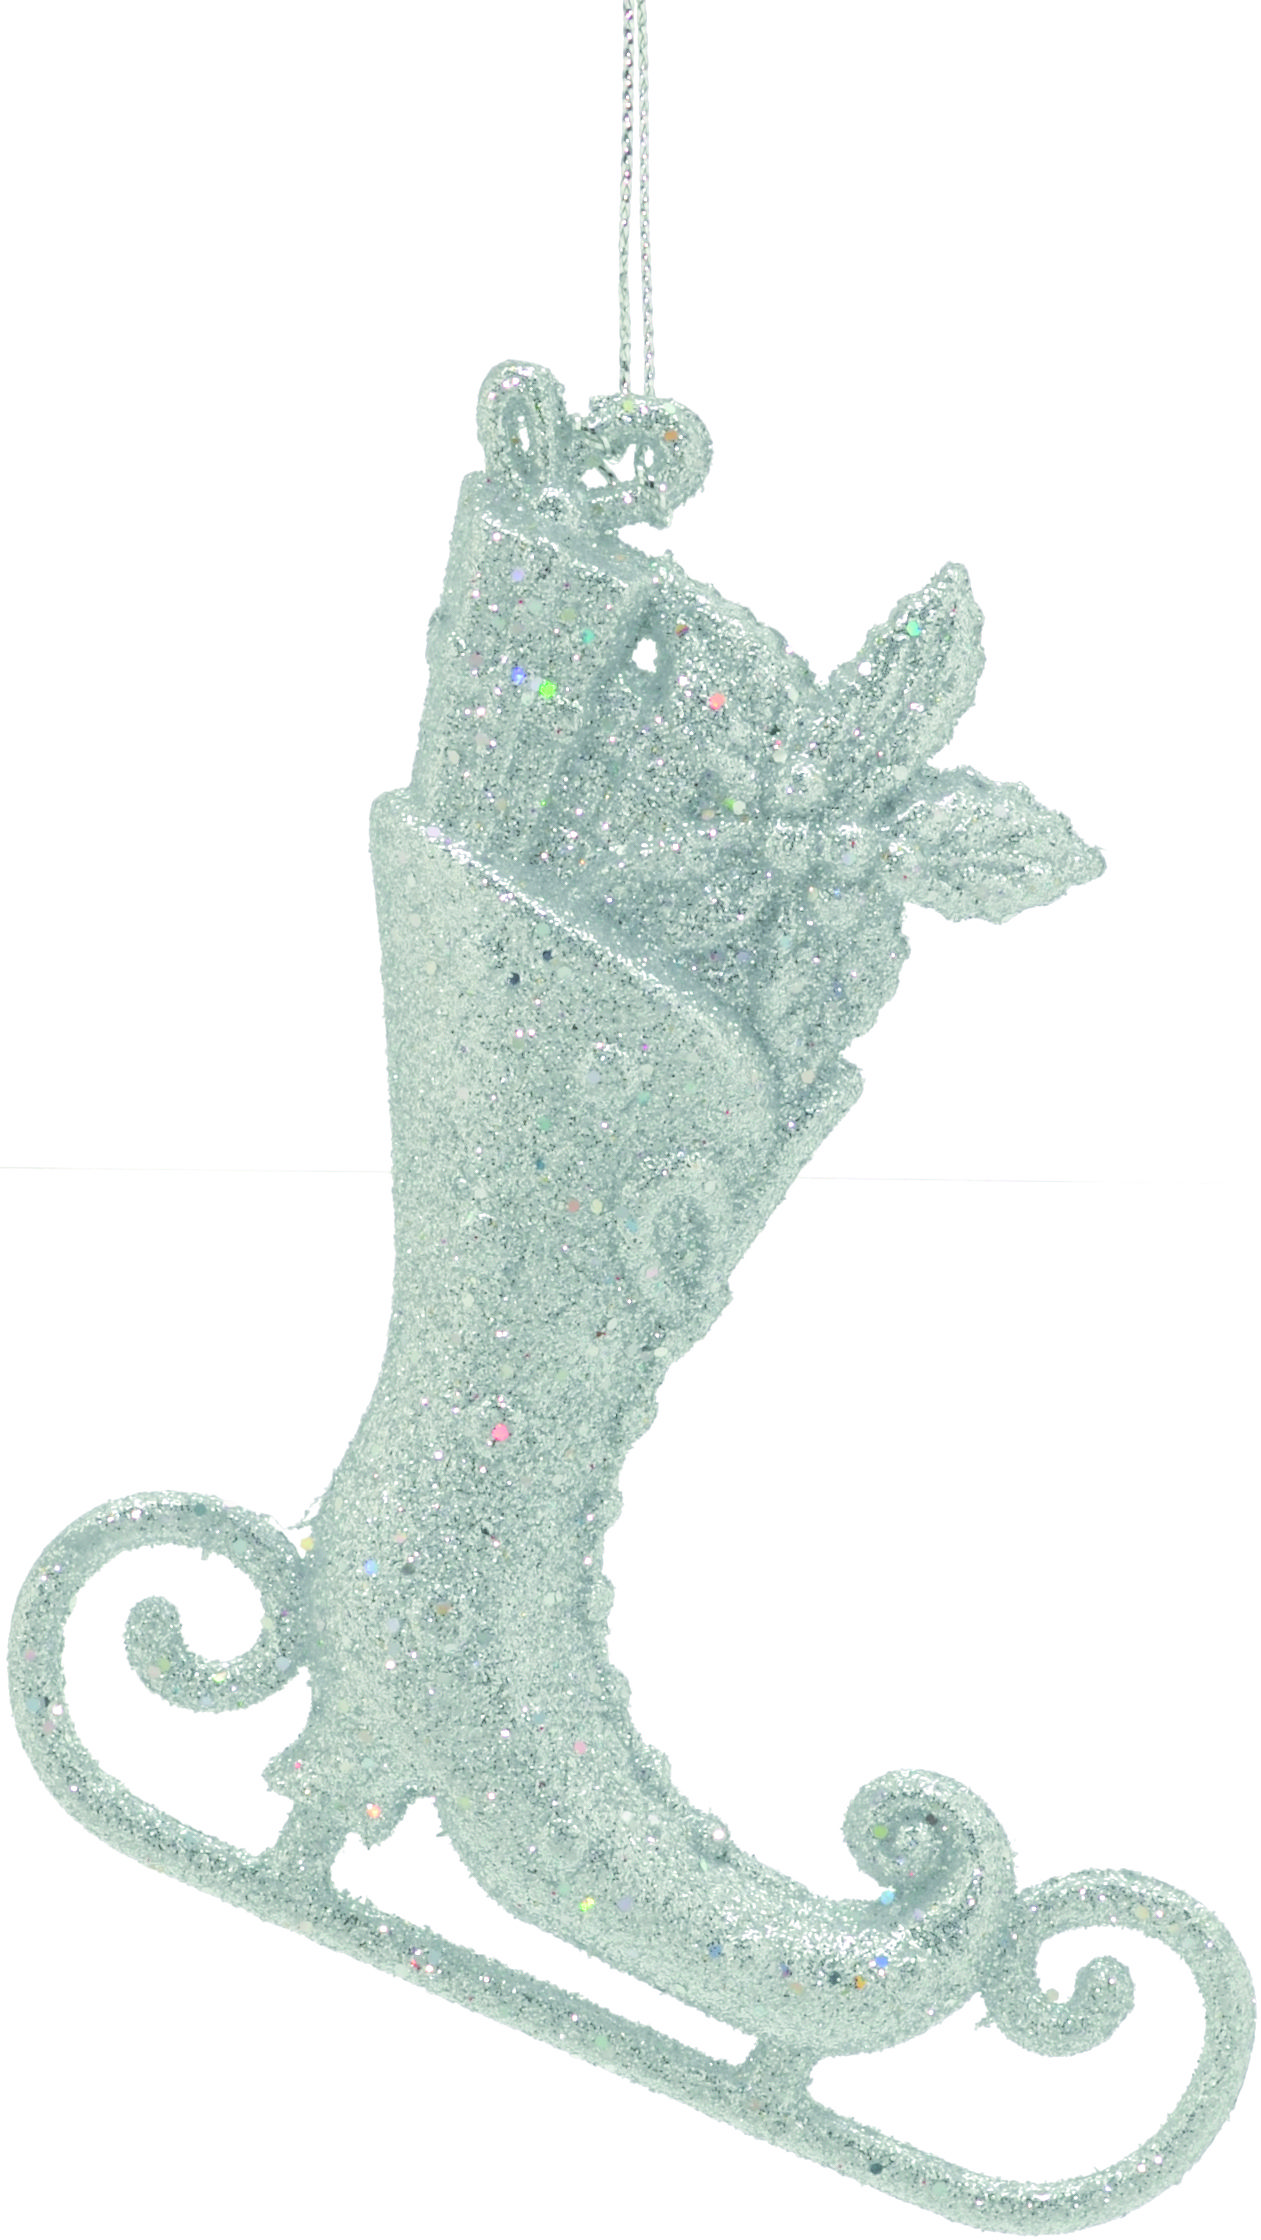 Silver Glitter Ice Skate Tree Decoration #ukchristmasworld #barnsley #christmas #decoration #festive #hanging #christmastree #display http://www.ukchristmasworld.com/Shop/Christmas-Tree-Decorations/Christmas-Tree-Decorations/5130-Silver-Glitter-Ice-Skate-Tree-Decoration.html